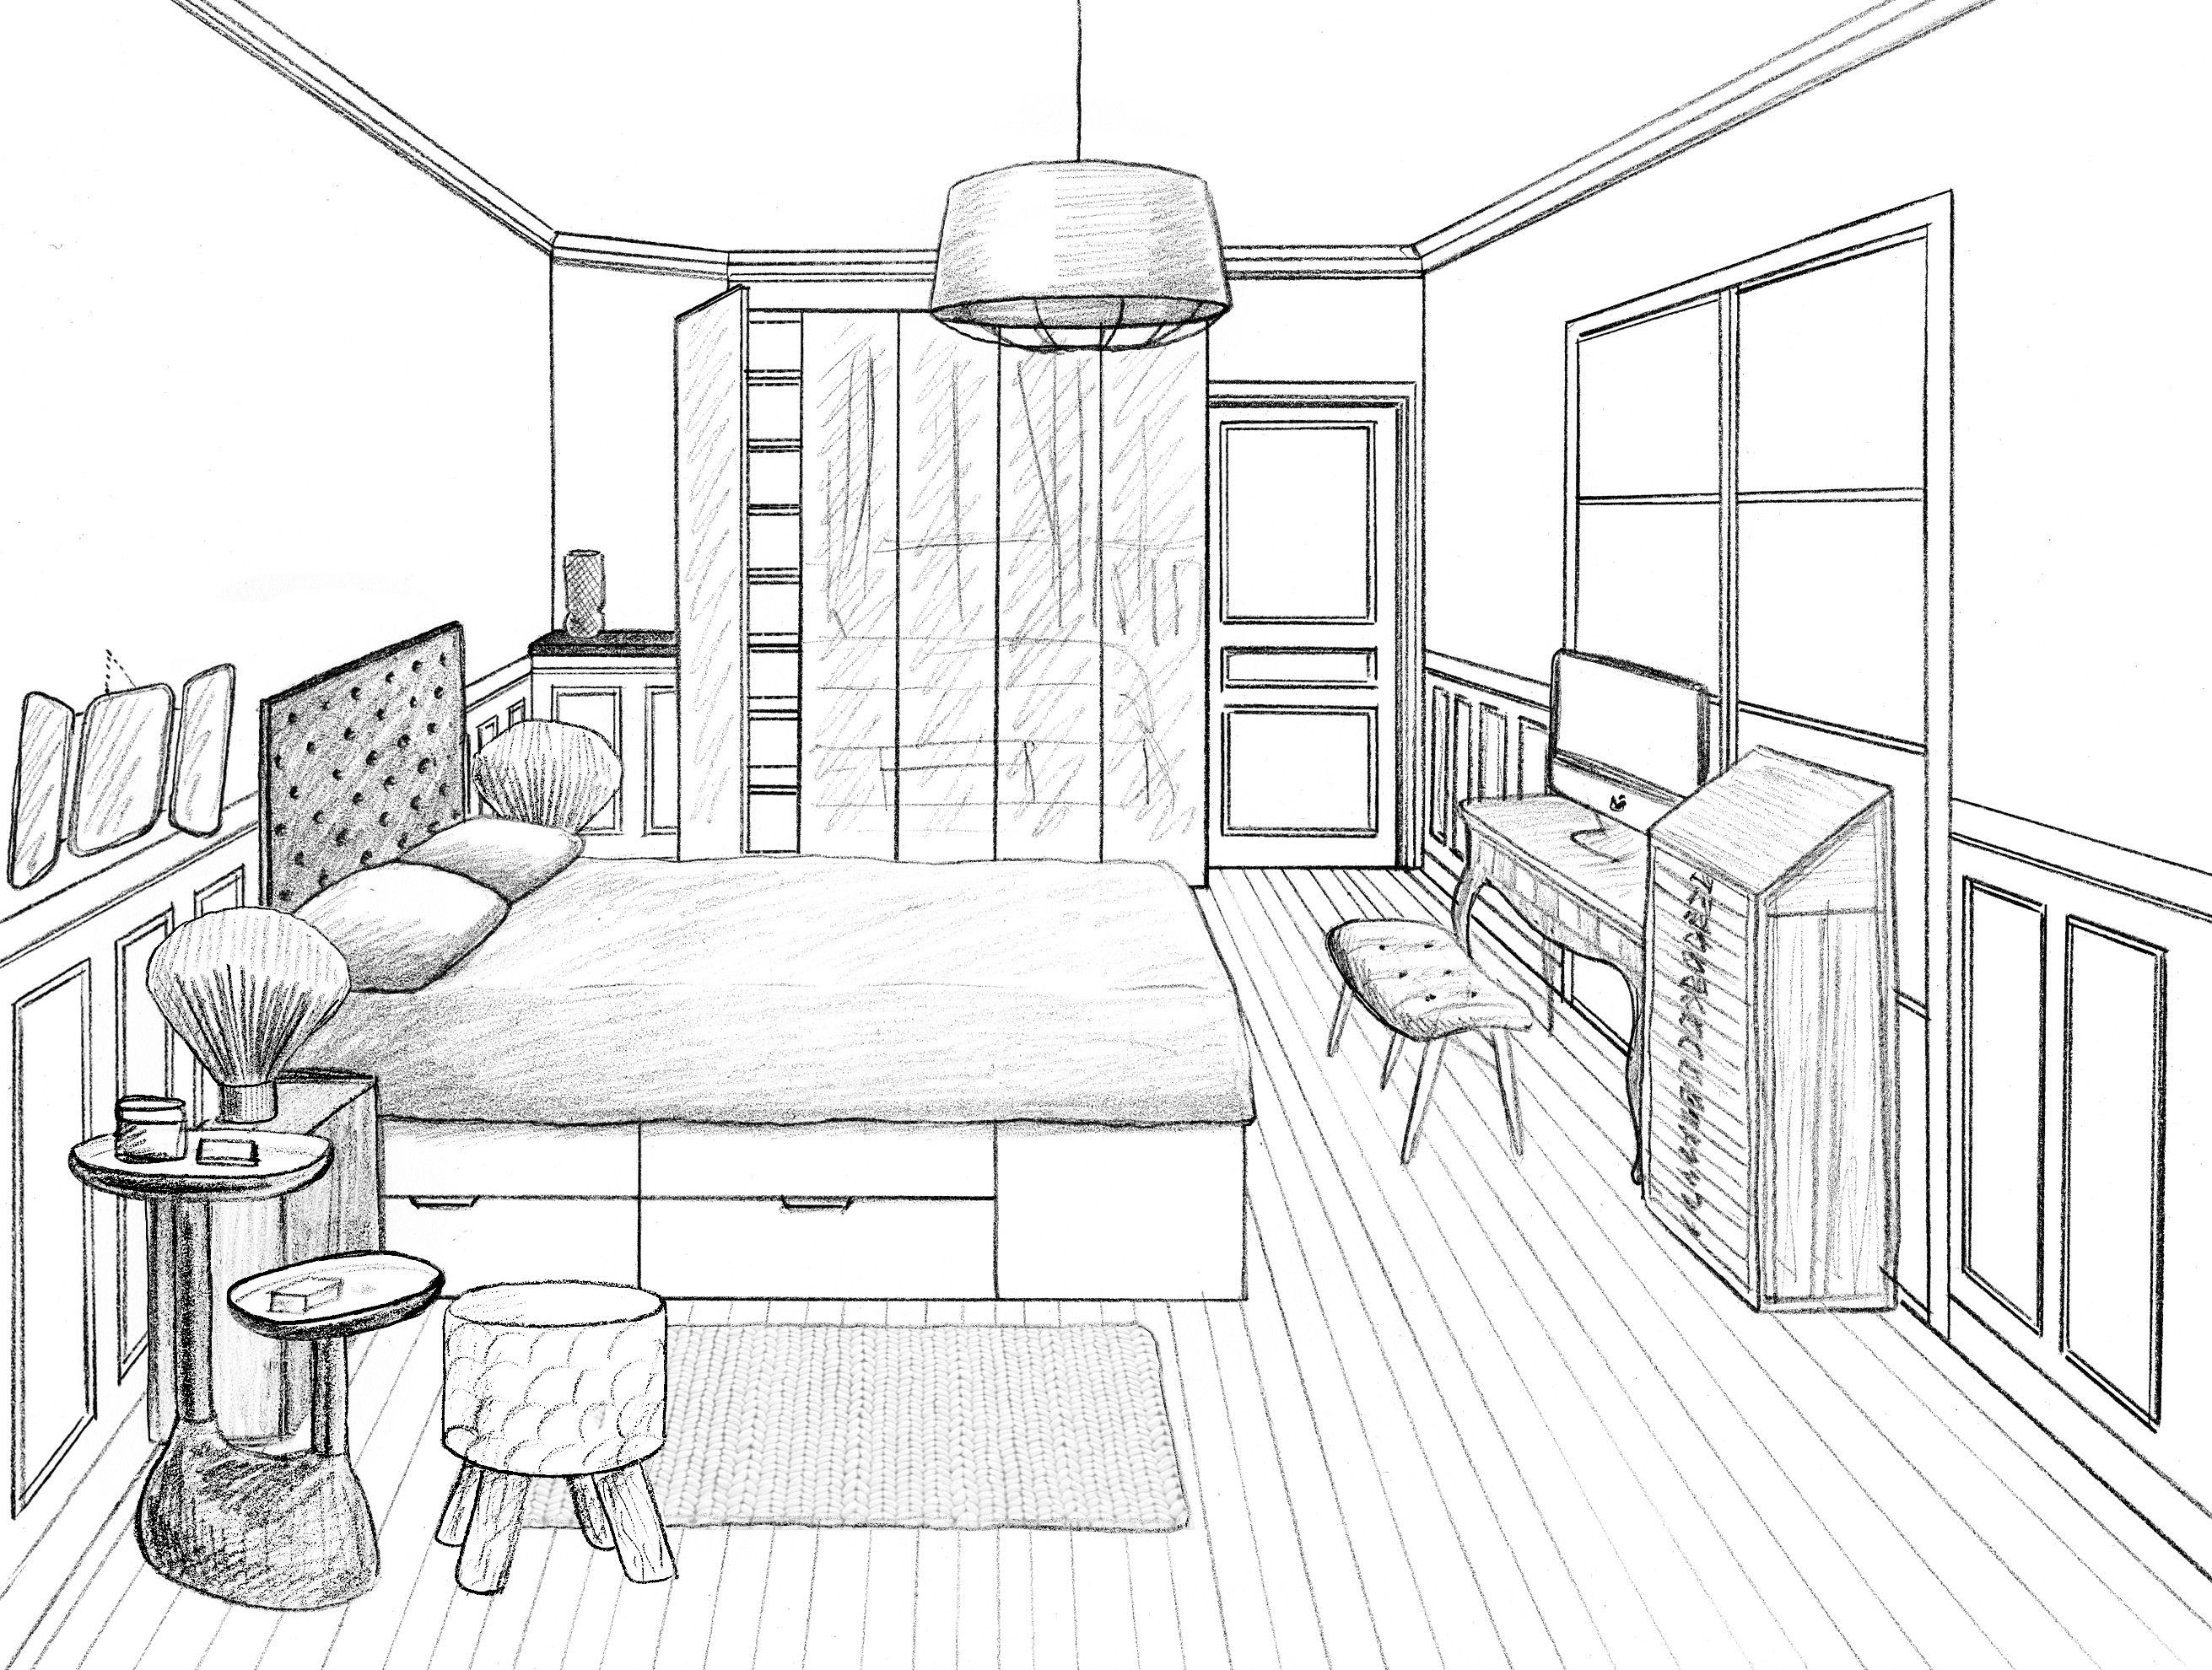 Chambre Simple Chambre Double Difference Dessins De Maisons En Perspective Fantaisie Image Dessin Chambre